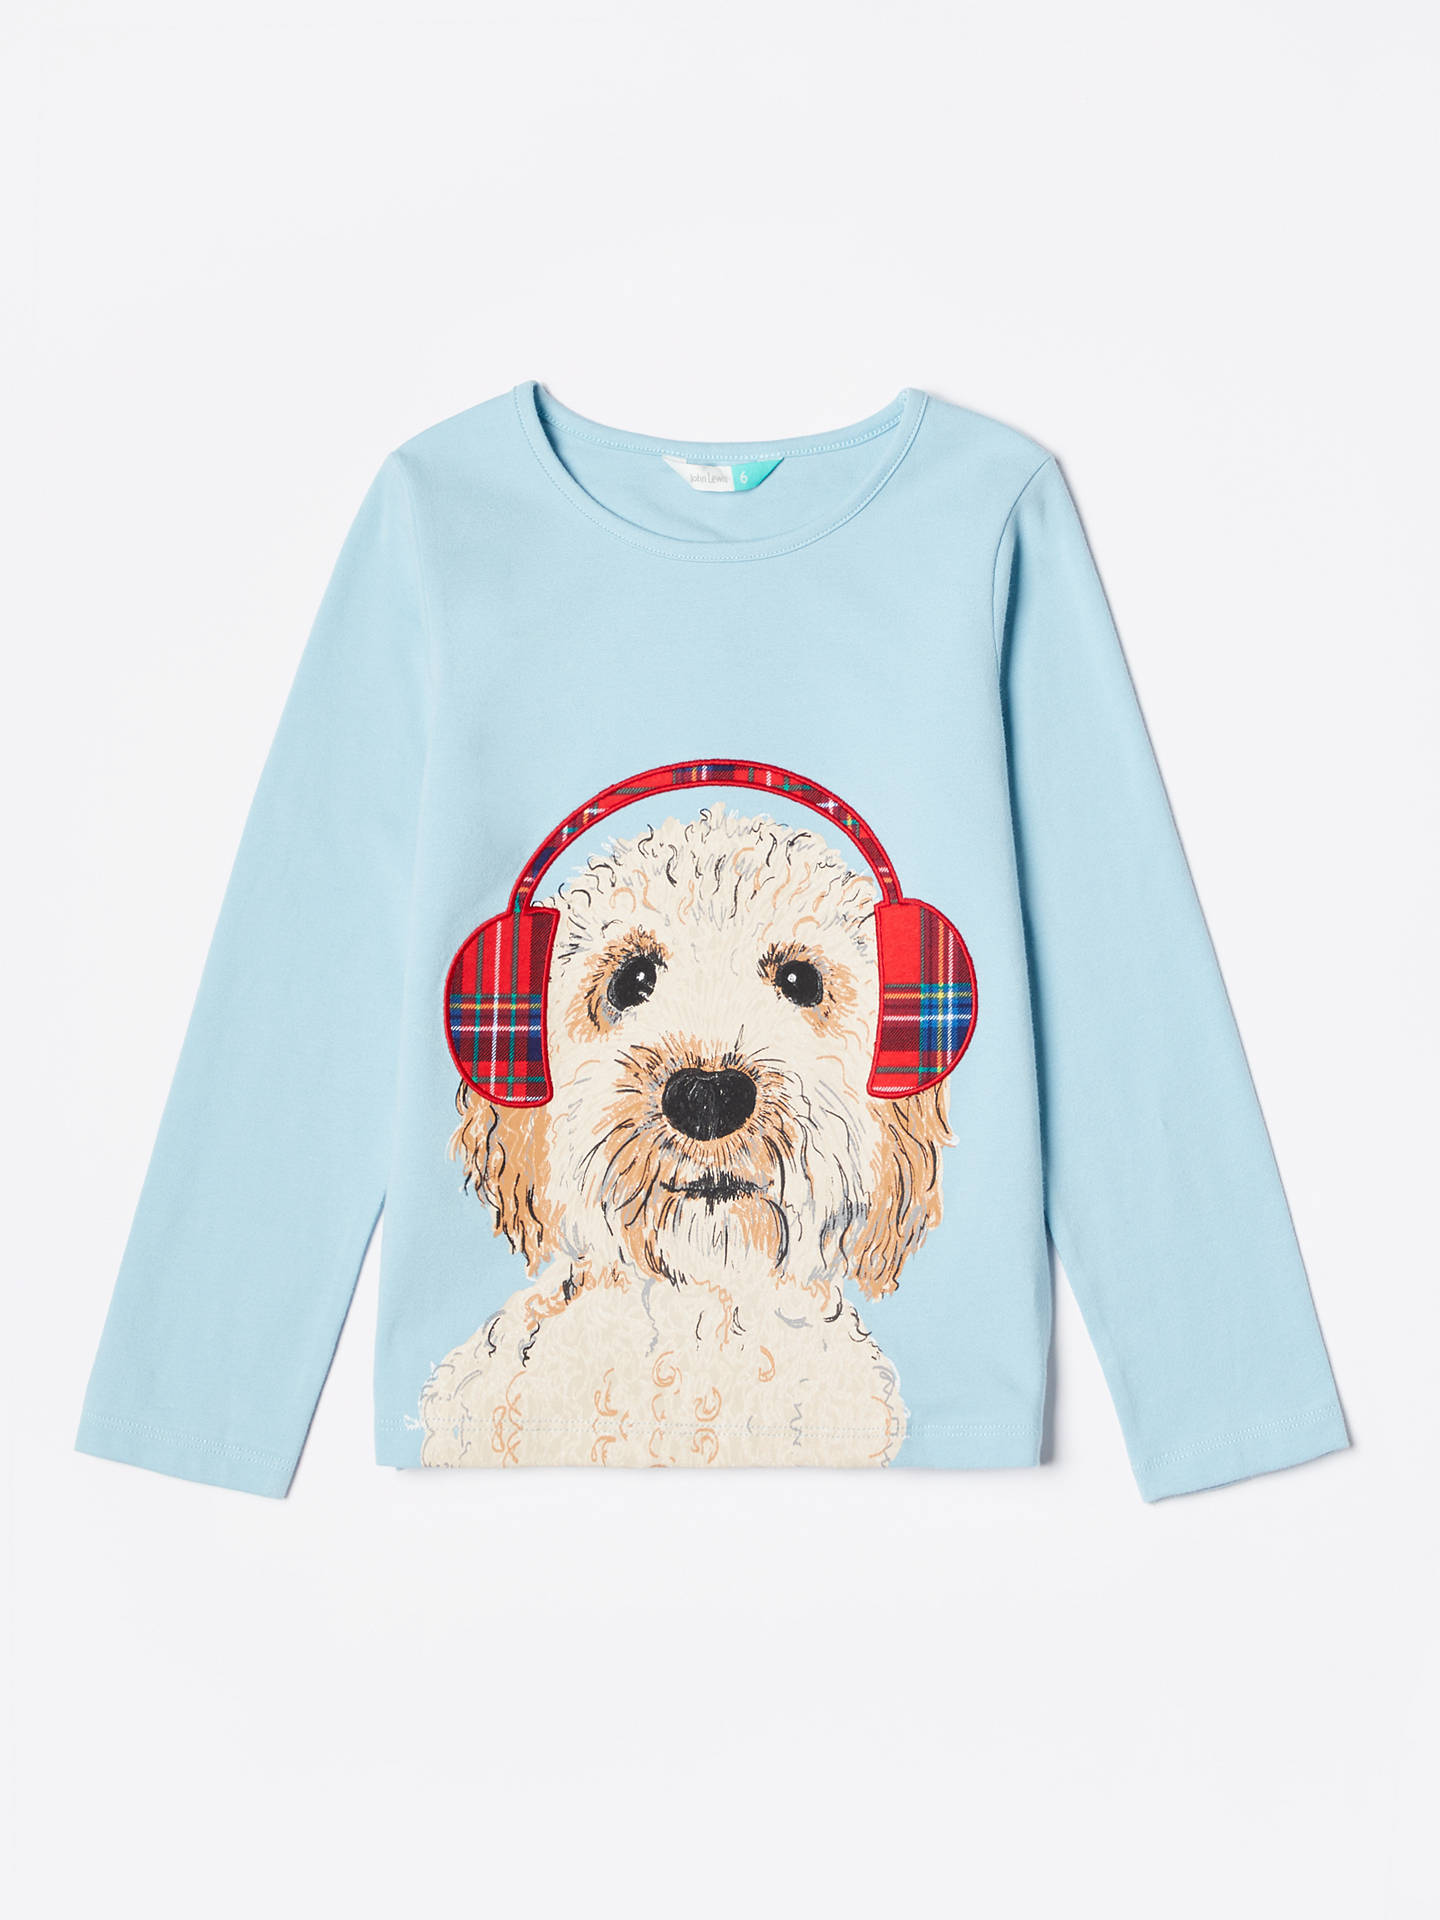 Buy John Lewis & Partners Girls' Dog In Headphones T-Shirt, Aqua, 10 years Online at johnlewis.com